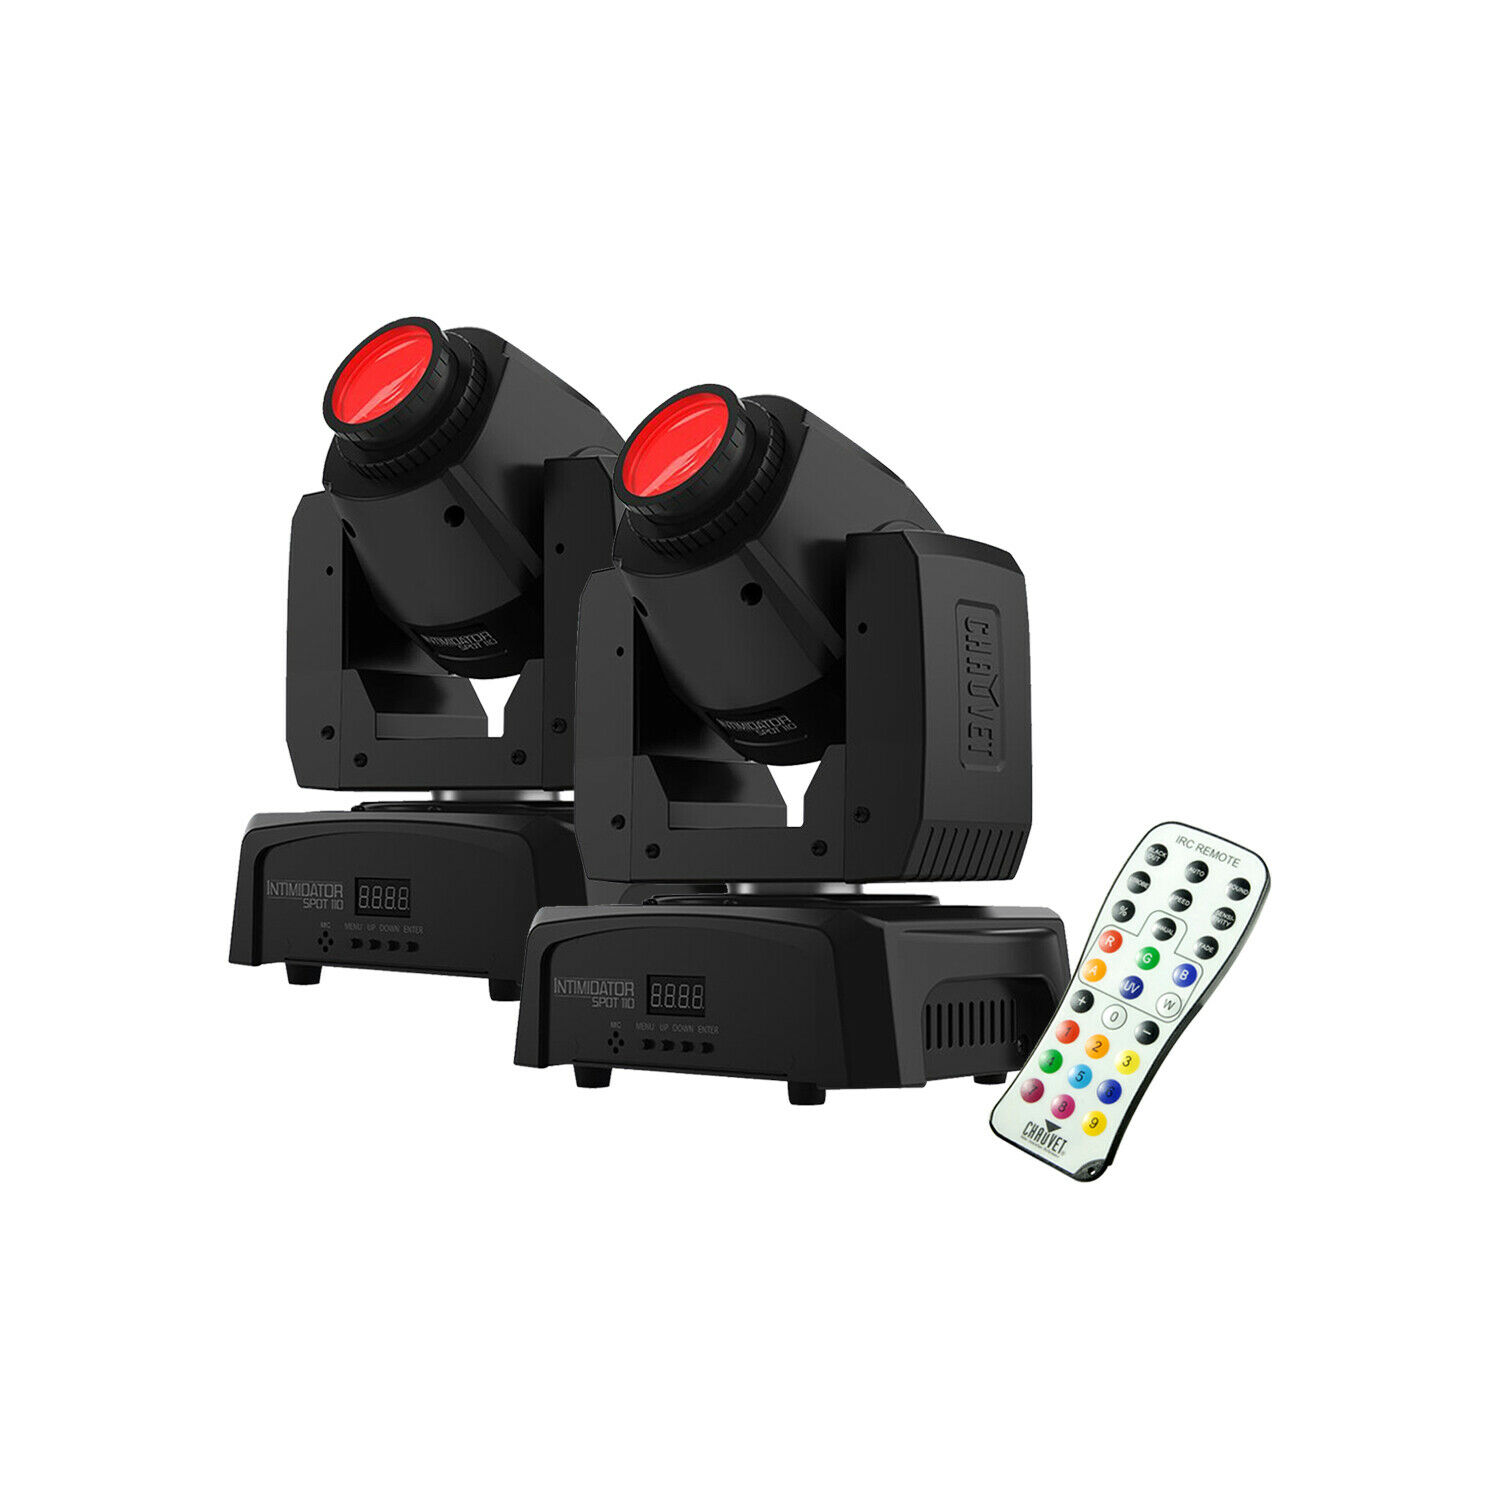 2)Chauvet Intimidator Spot 110 Lightweight LED Moving Head Light W IRC-6 Remote